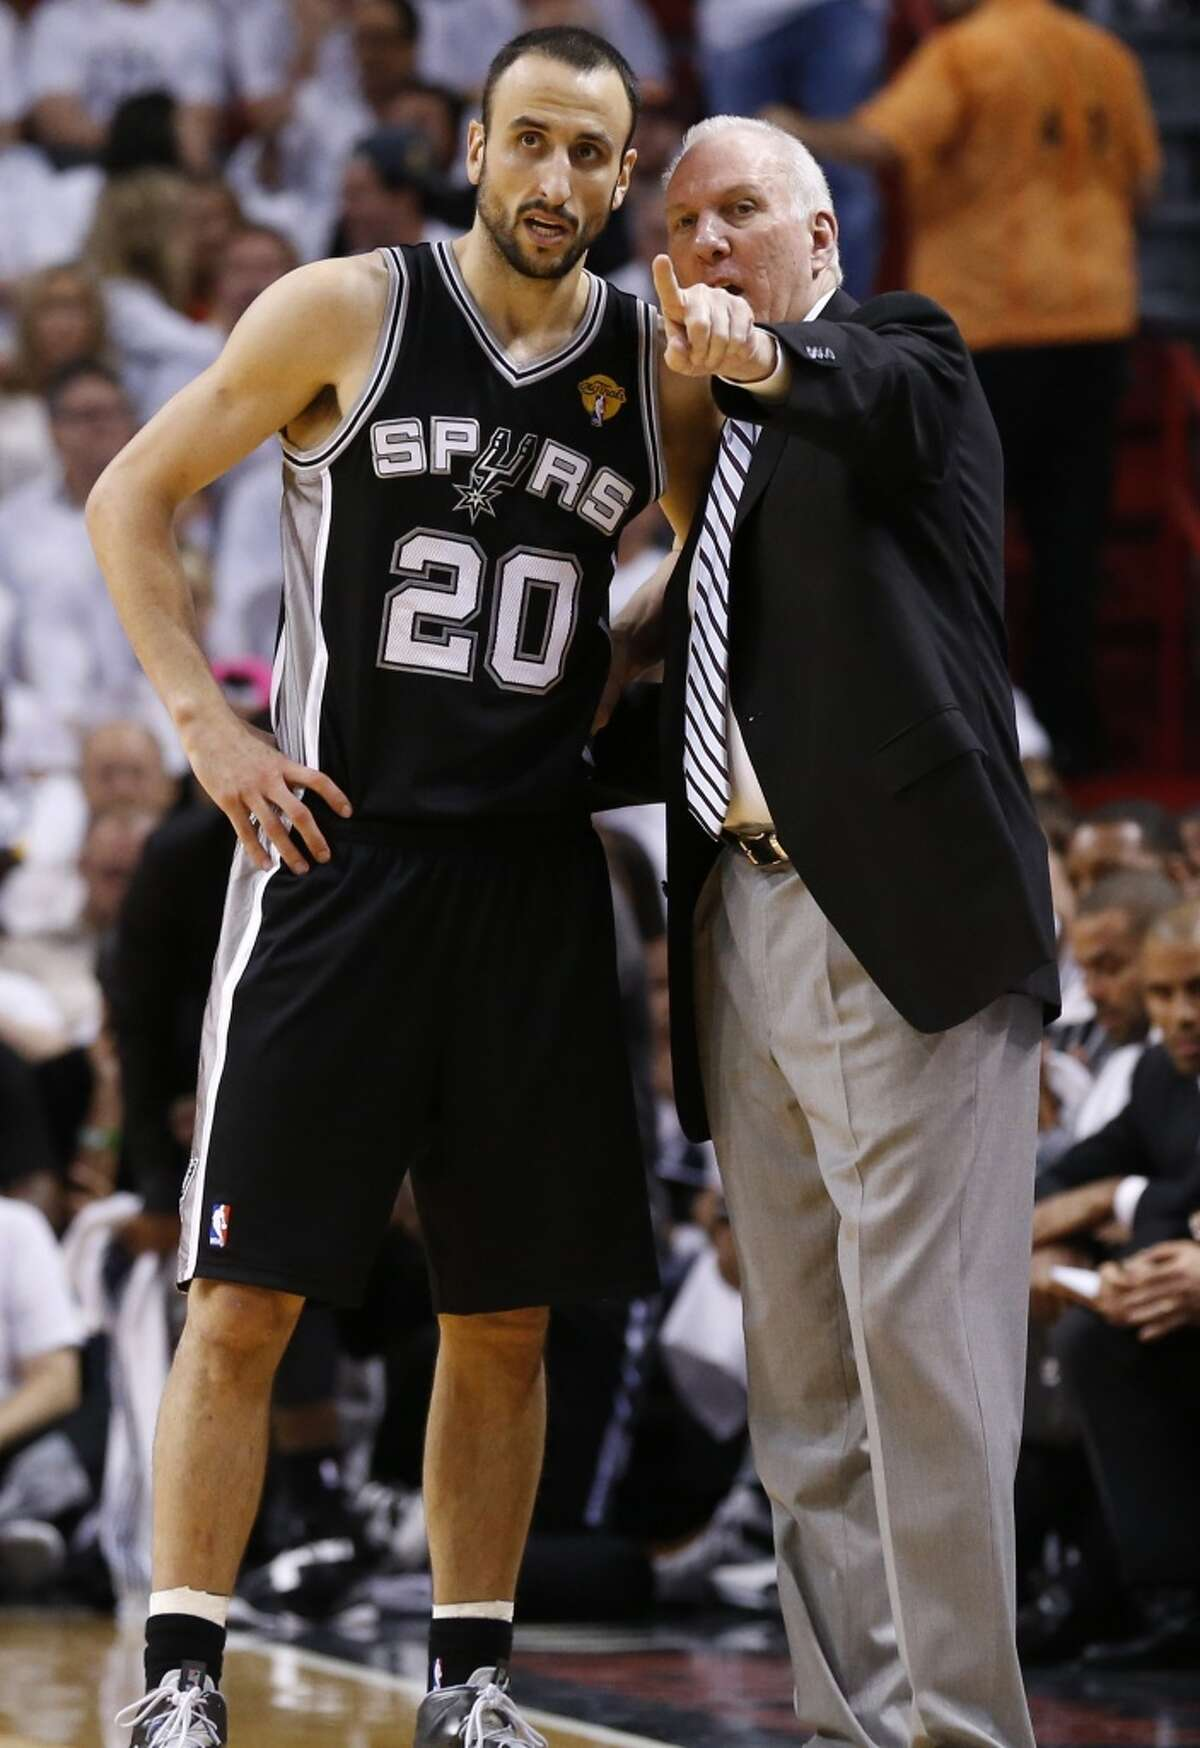 San Antonio Spurs head coach Gregg Popovich talks to Manu Ginobili during the first half of Game 7 of the 2013 NBA Finals Thursday, June 20, 2013 at American Airlines Arena in Miami. (Edward A. Ornelas/San Antonio Express-News)